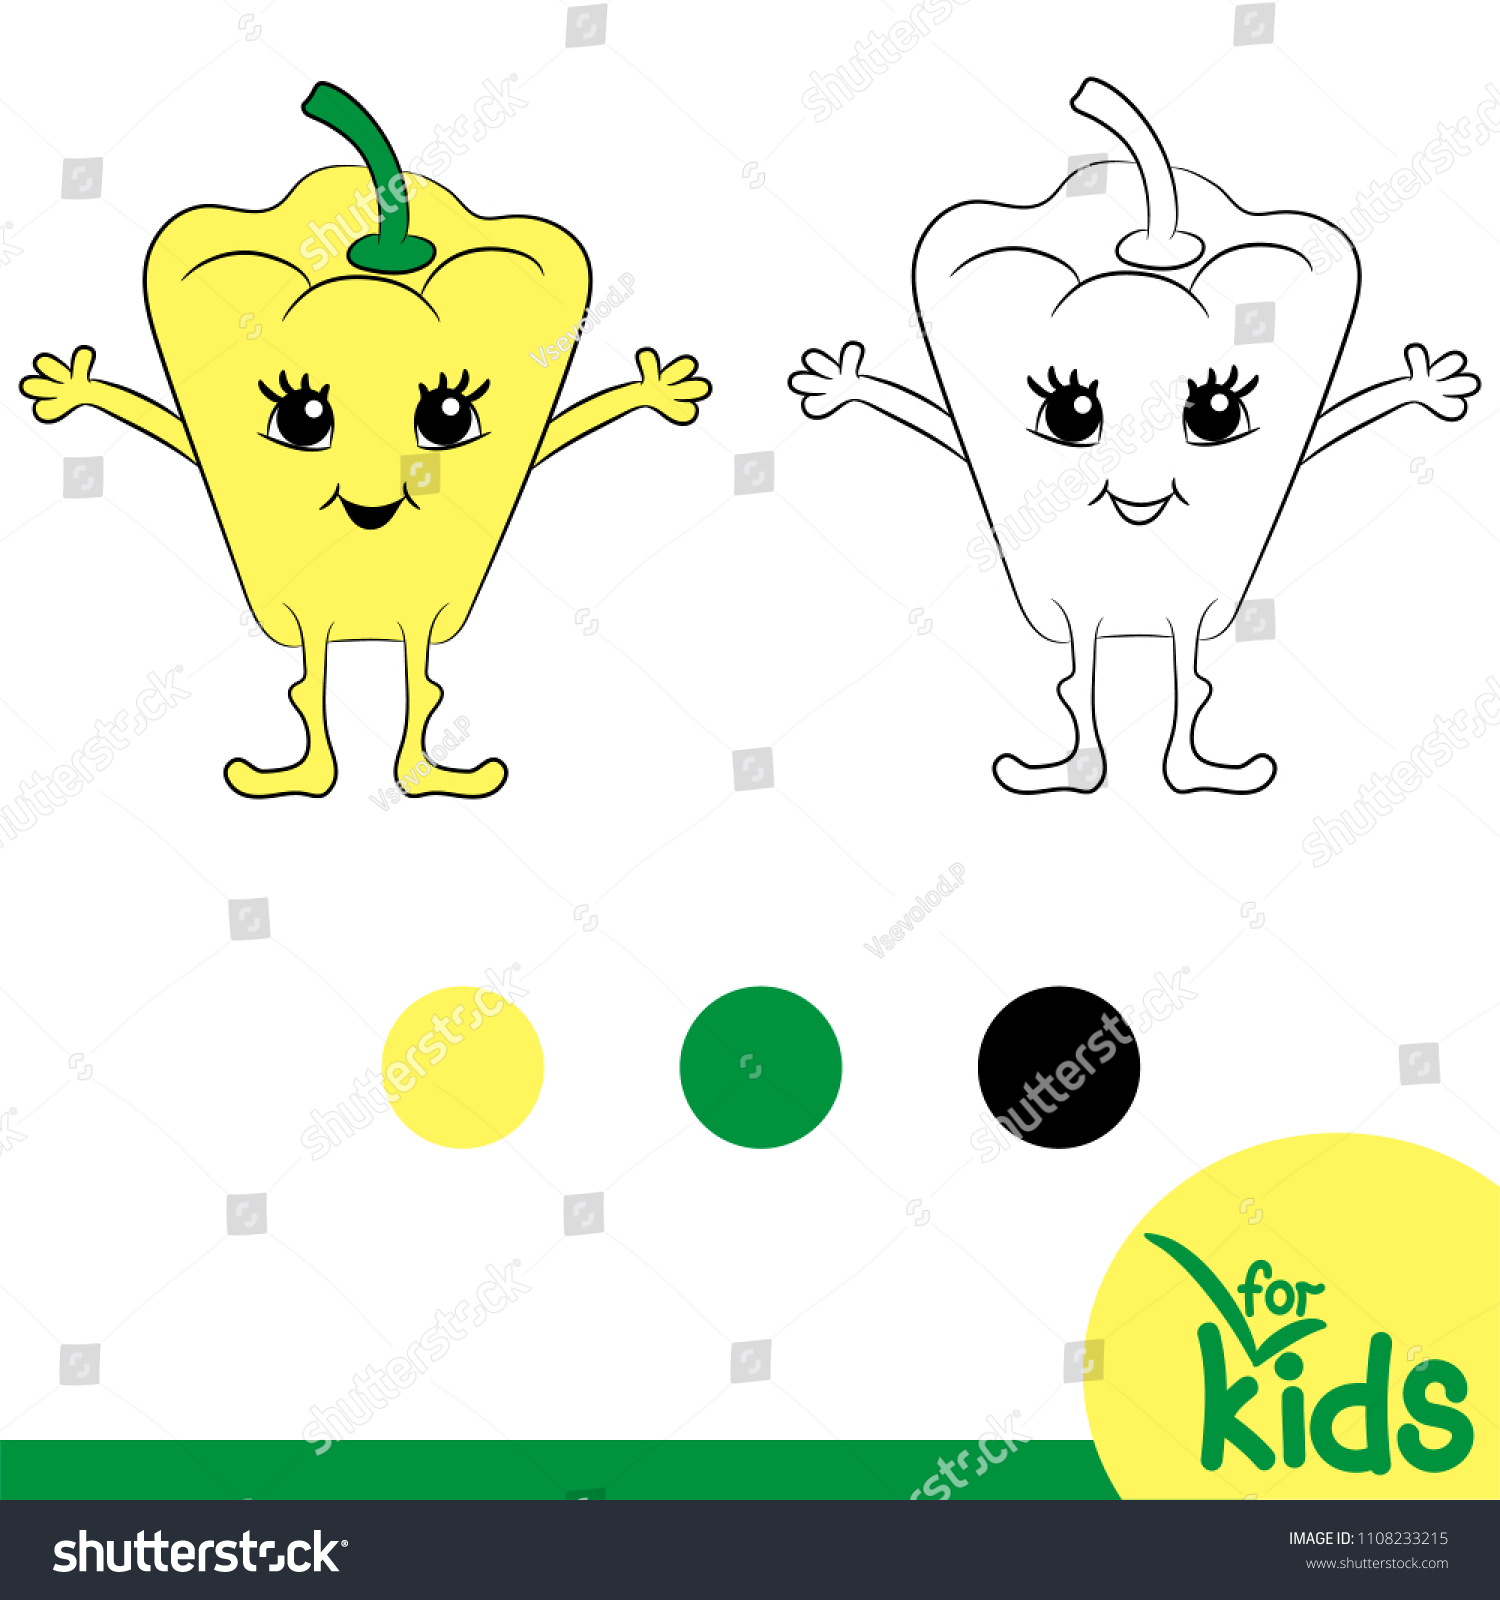 🎨 Vegetables Pepper 8 - Kizi Free Coloring Pages For Children ... | 1600x1500